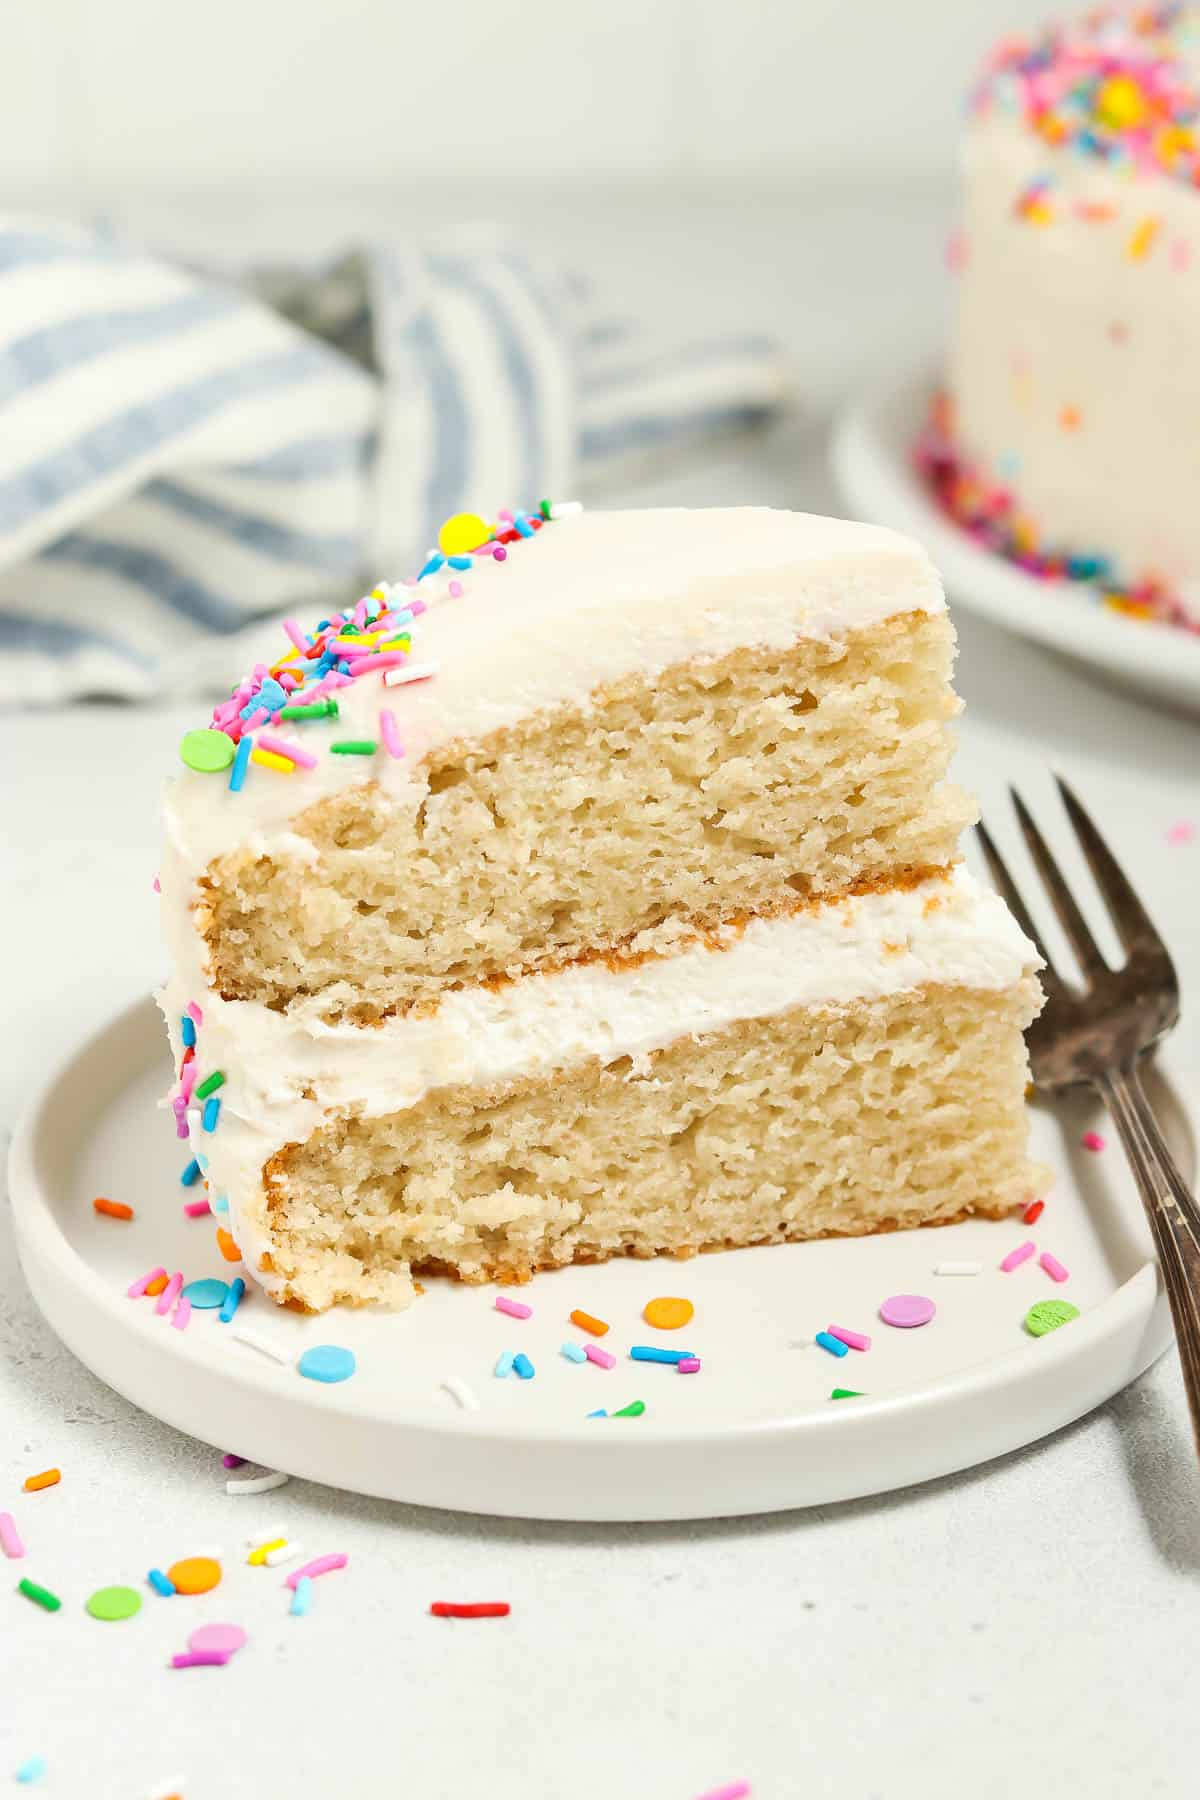 Side view of a slice of vegan vanilla cake on a white plate with sprinkles and fork on the side.